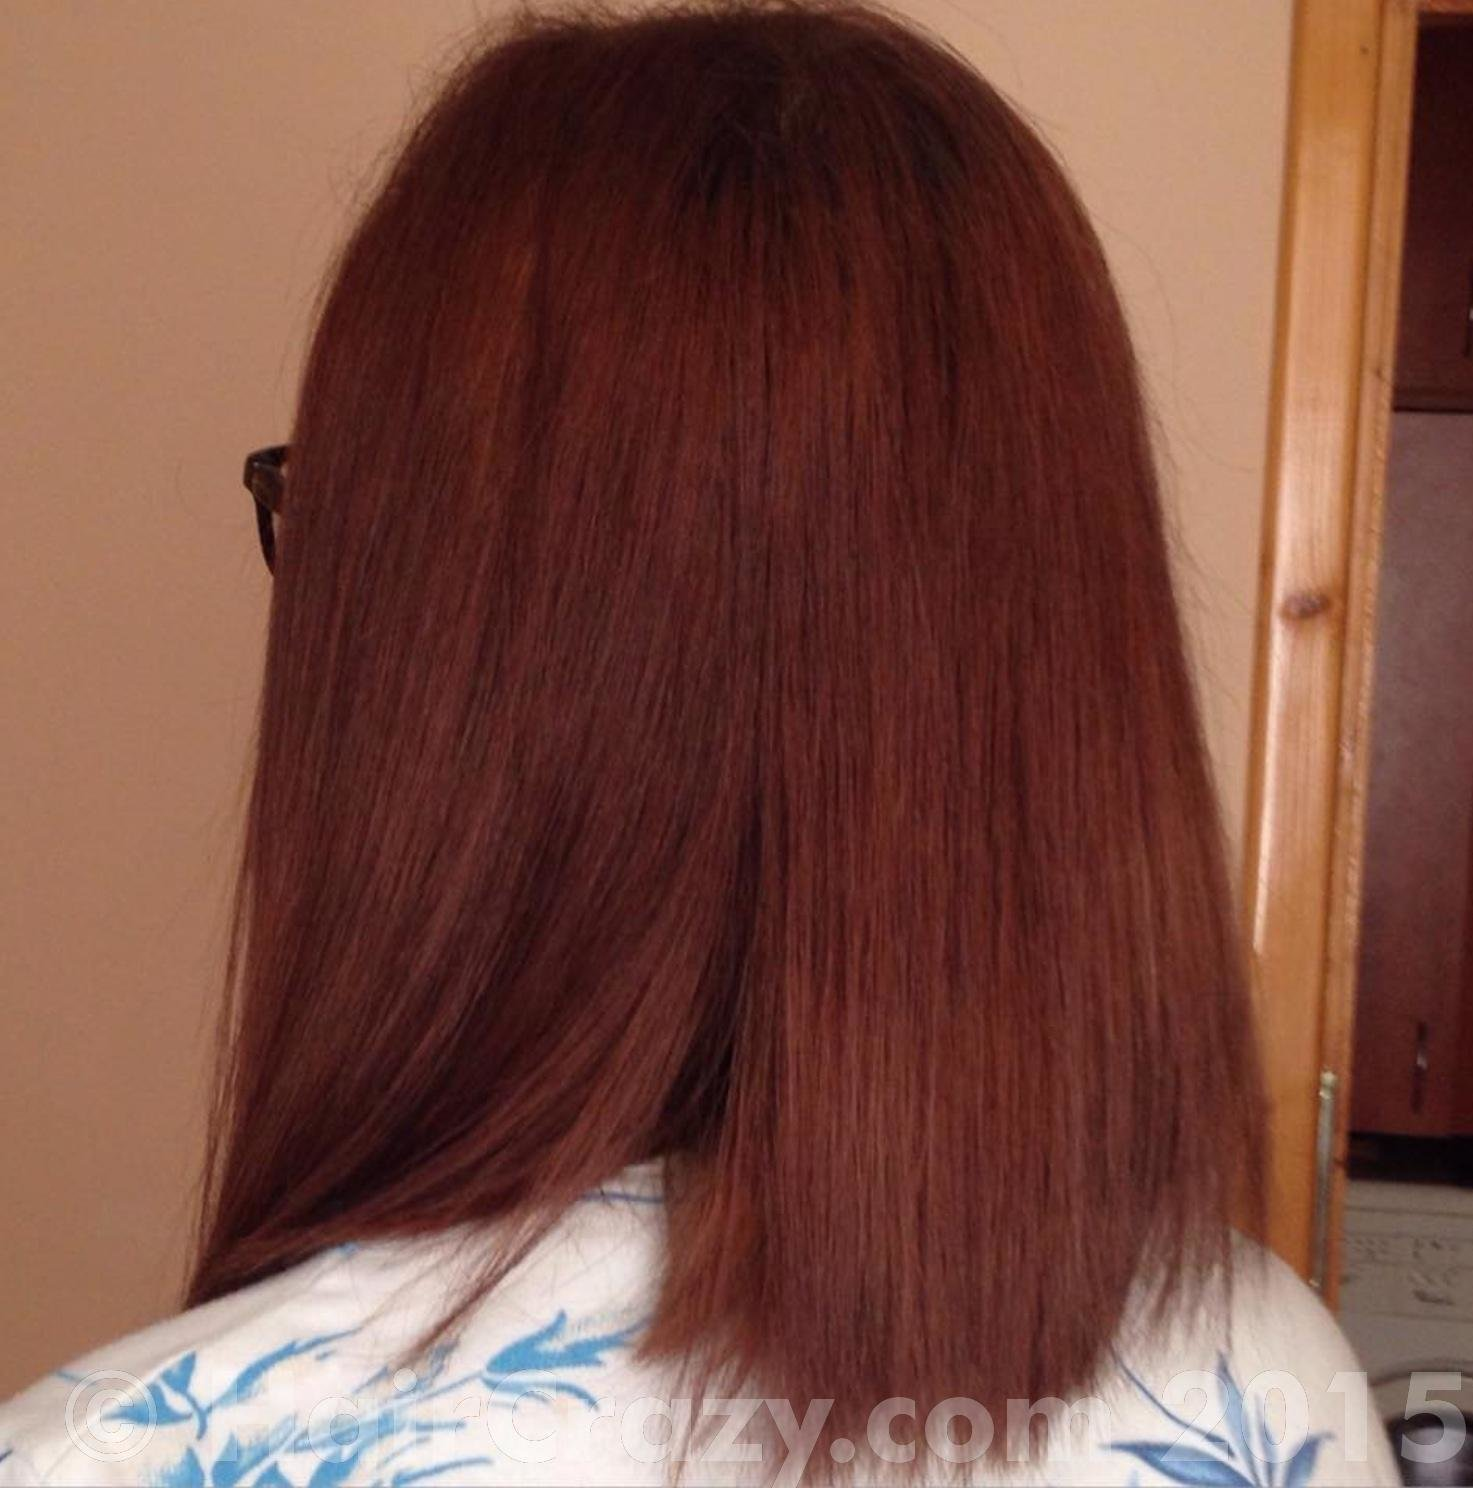 The Best Uneven And Patchy Hair How To Fix This Pics Forums Pictures